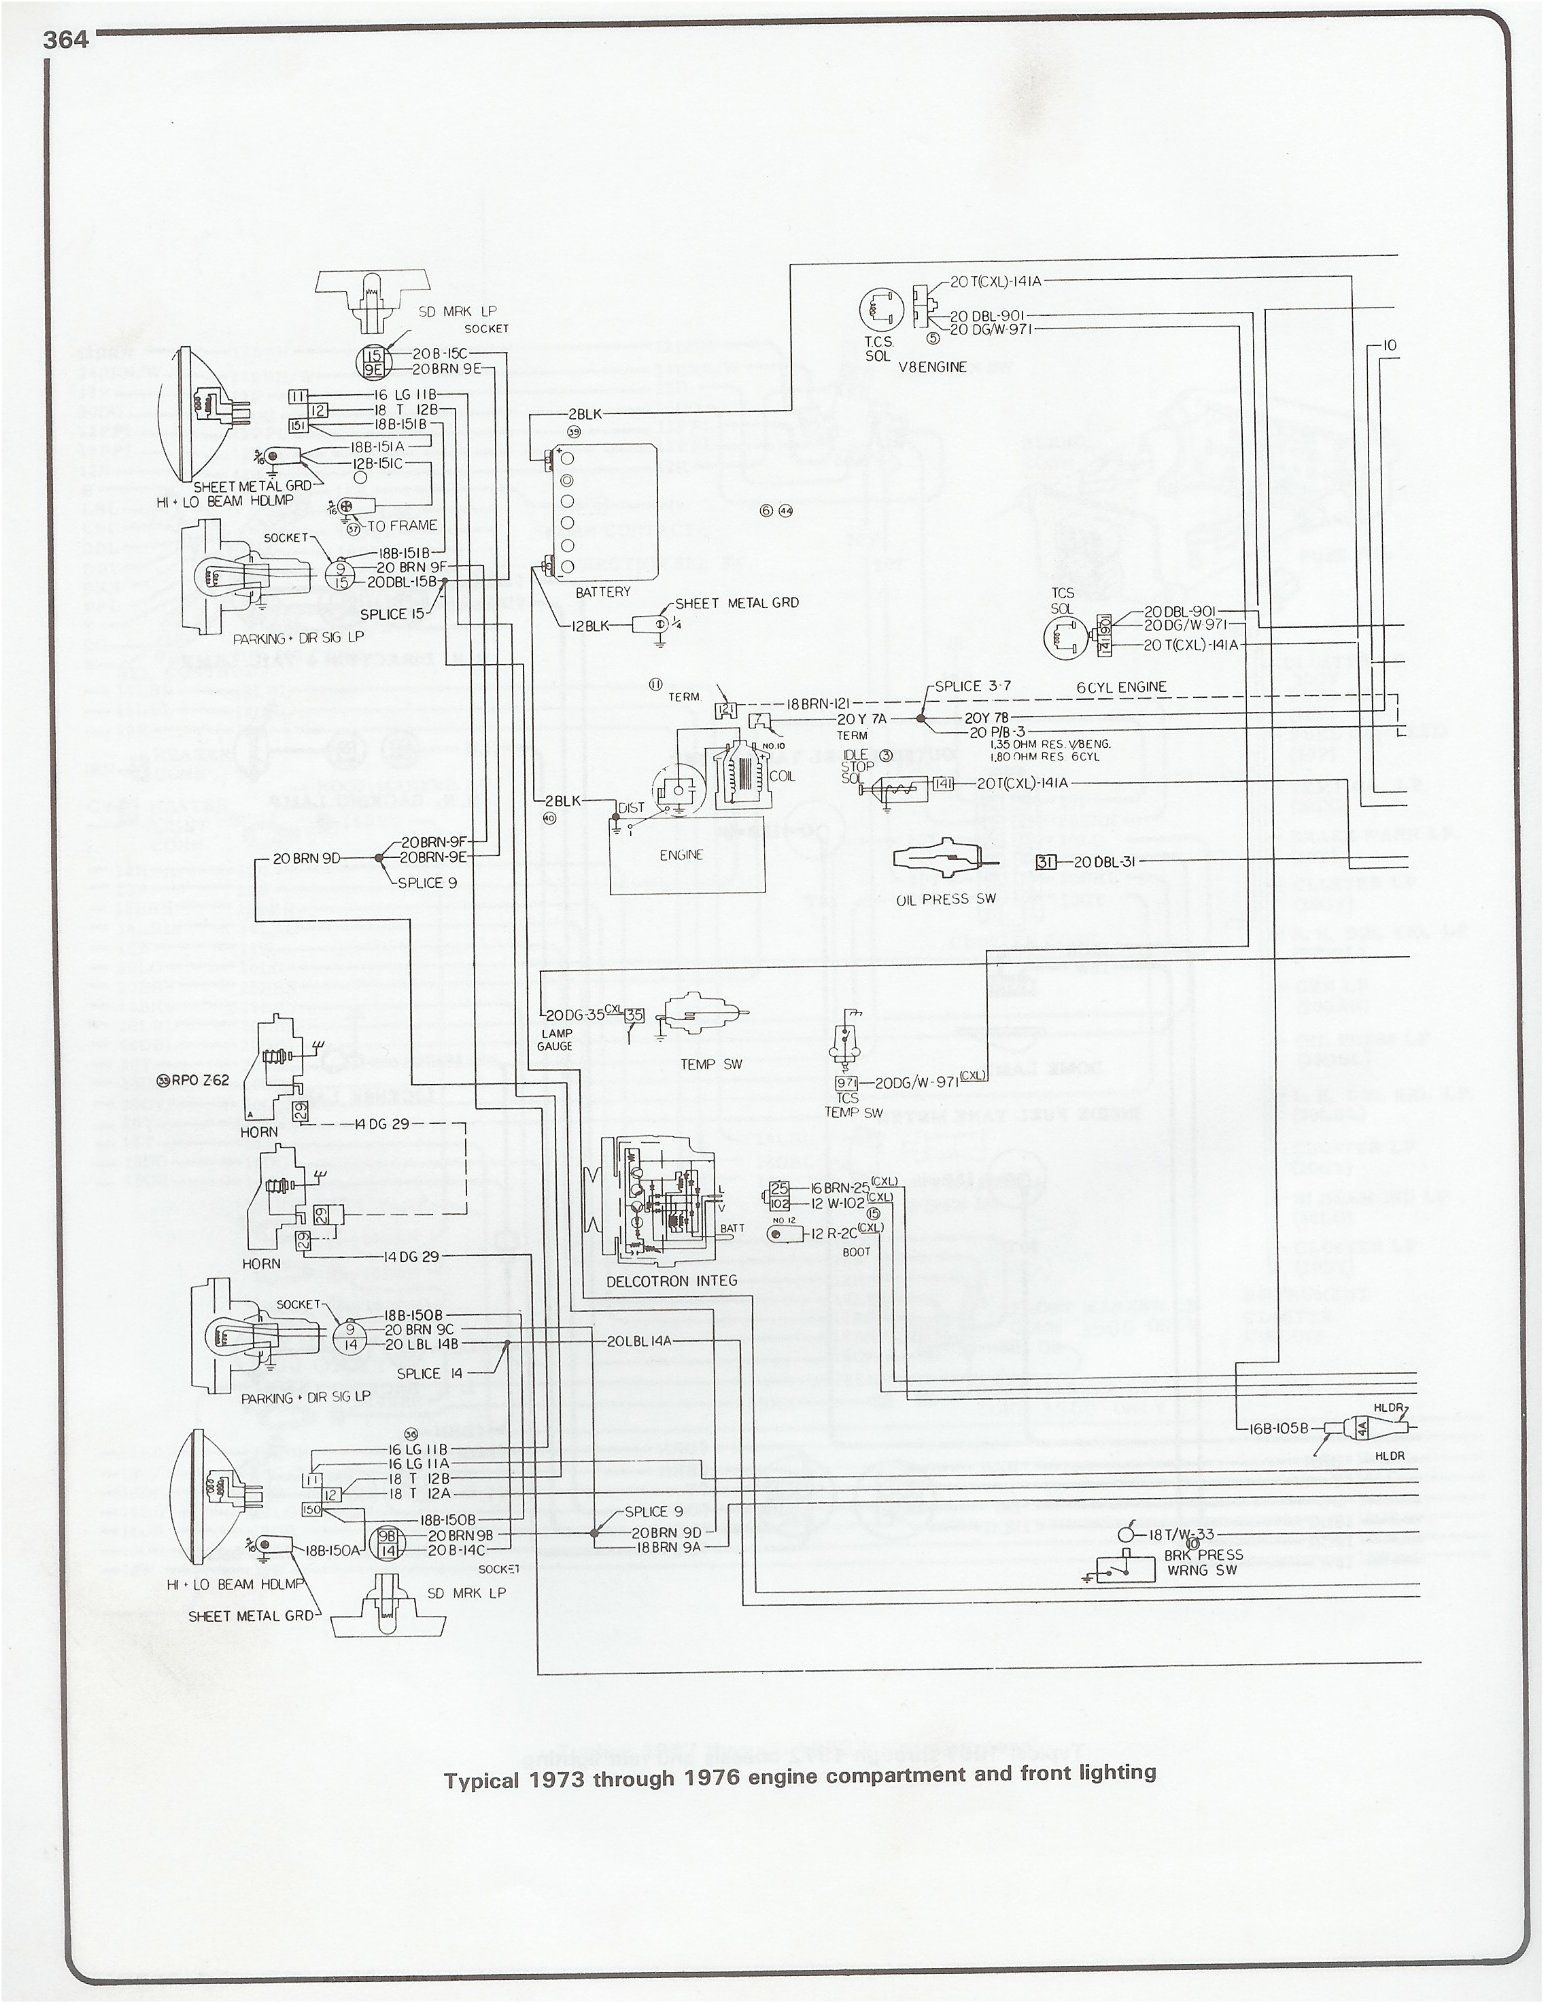 63 chevy truck wiring diagram for huskee lawn tractor 1976 chevrolet g20 all data 1973 pickup schematics